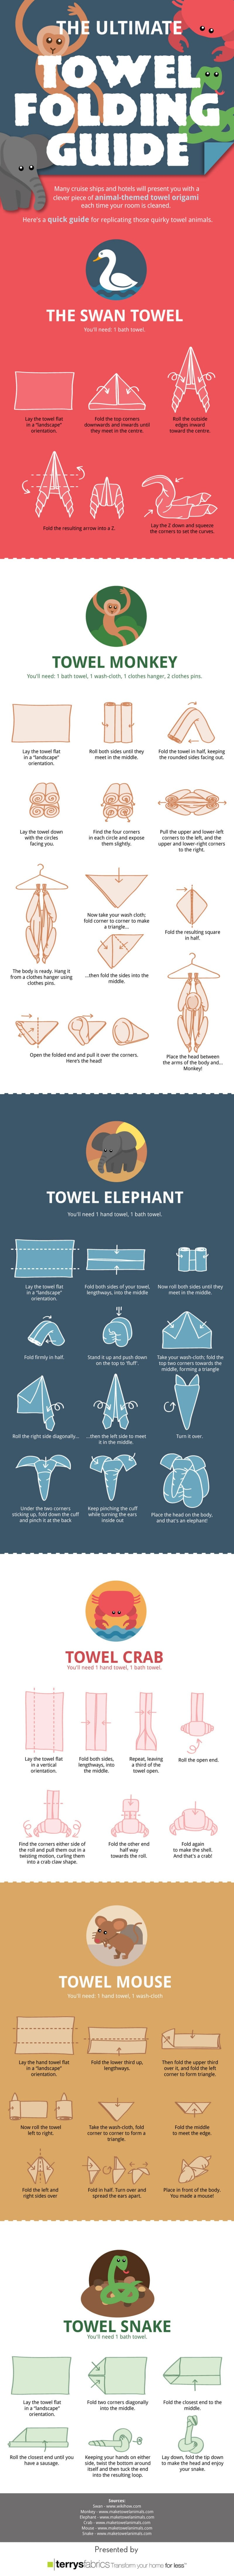 the-ultimate-towel-folding-guide1